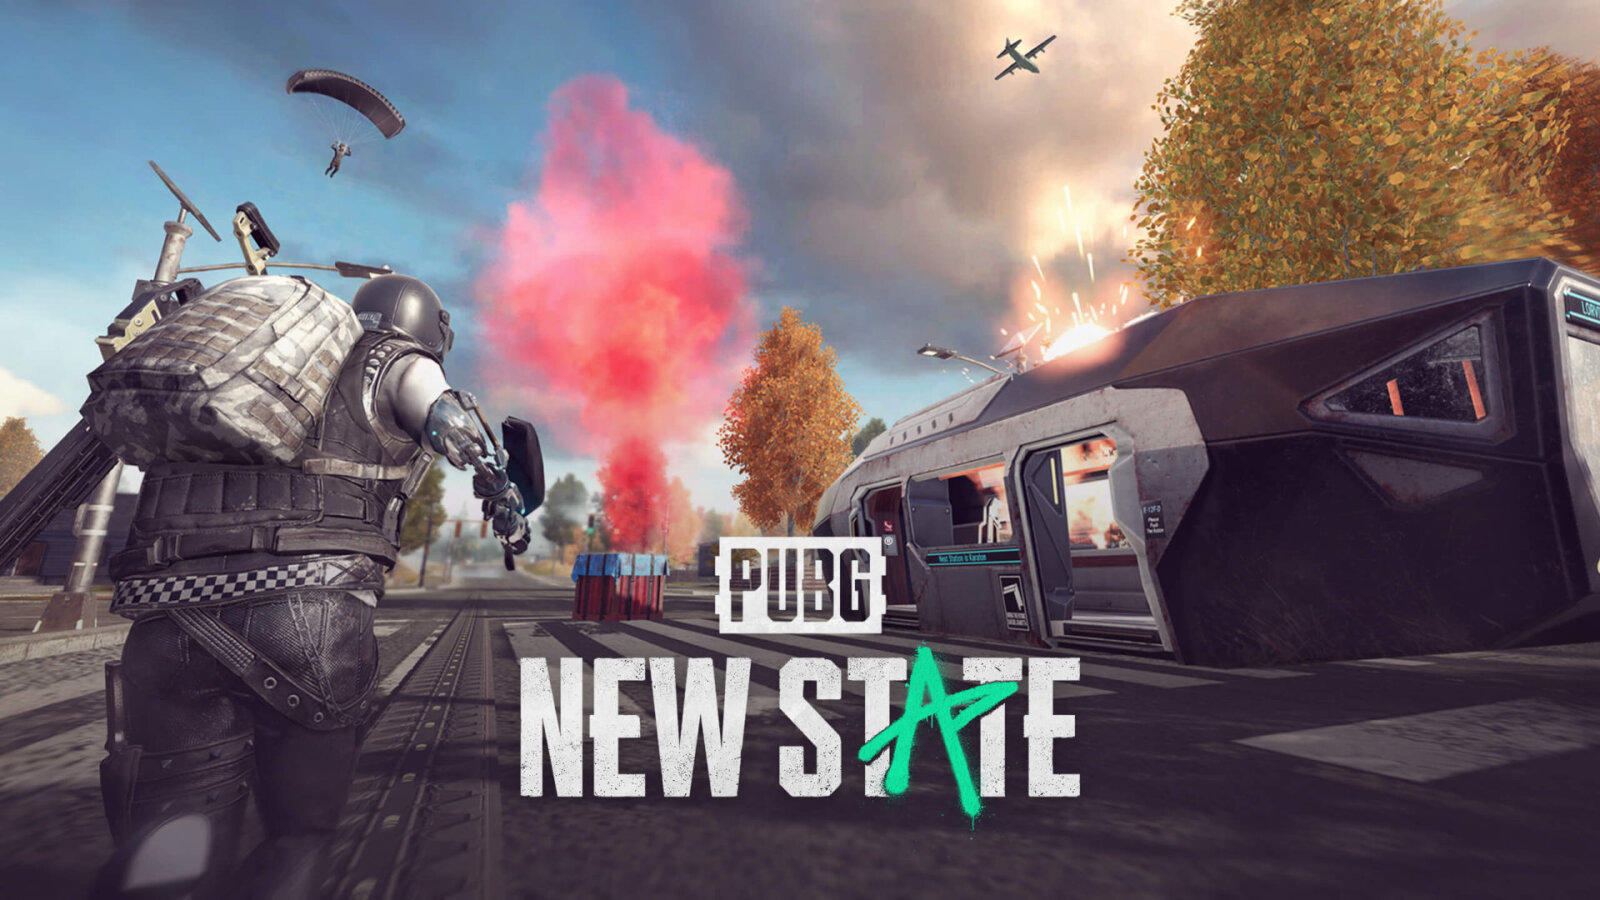 PUBG to Reportedly Get a Futuristic Sequel In New State 1920x1080